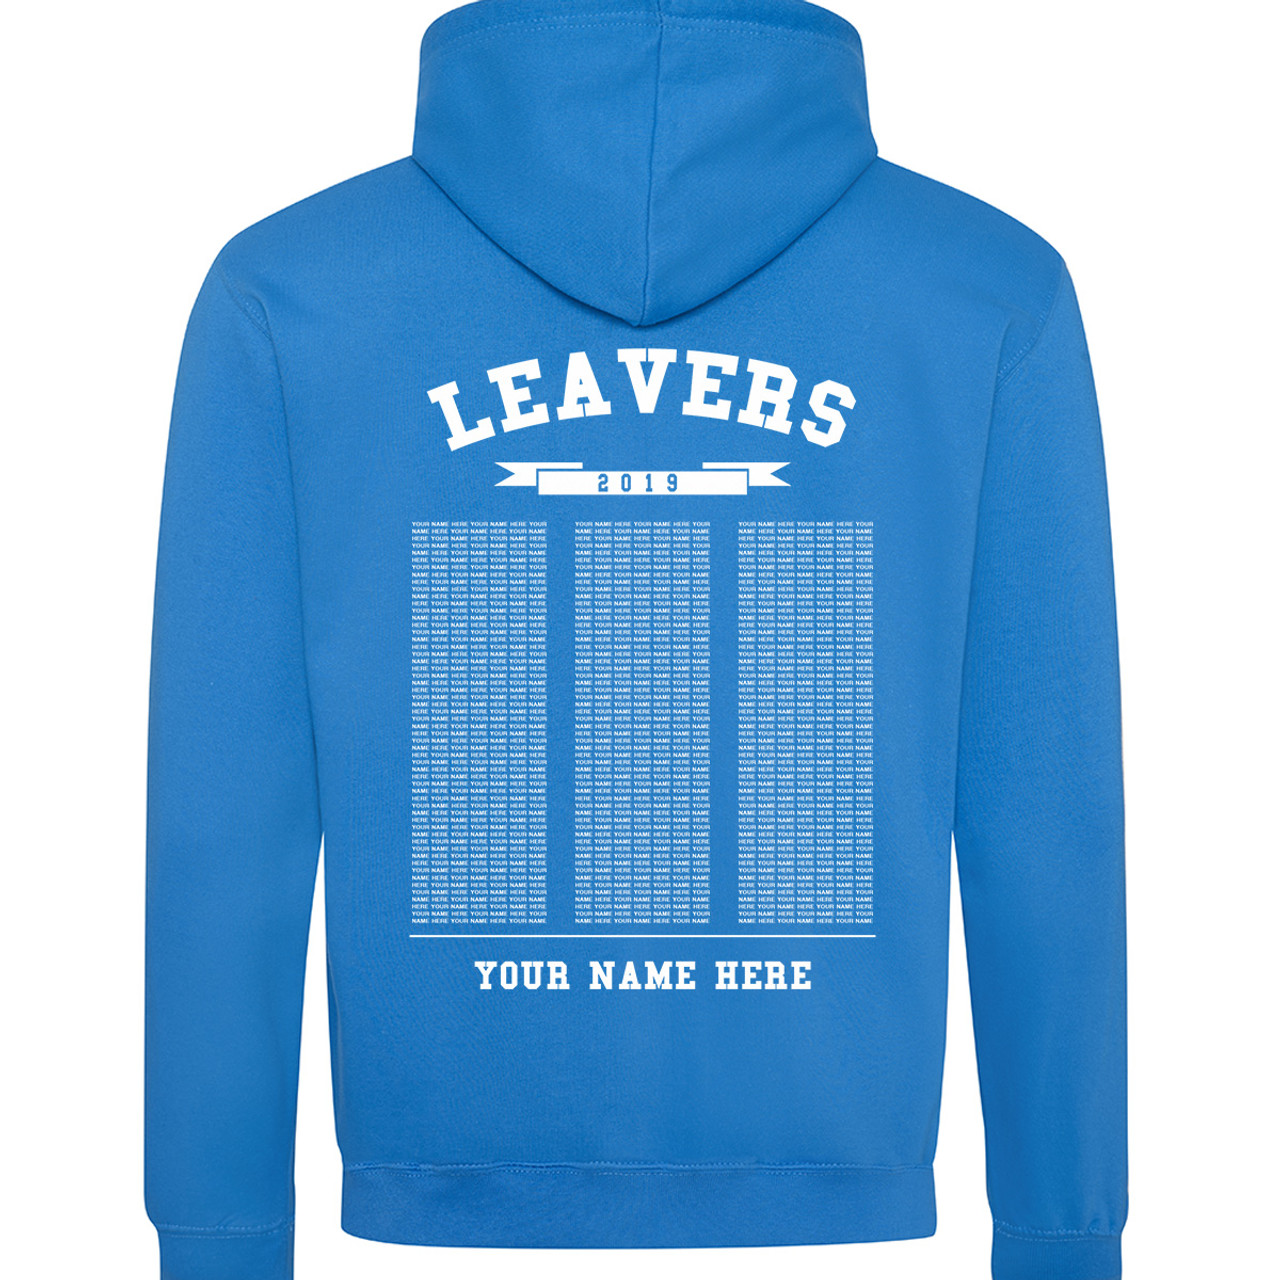 Leavers Hoodies Guides Schools-Colleges-Clubs-Universities-Associations-Scouts